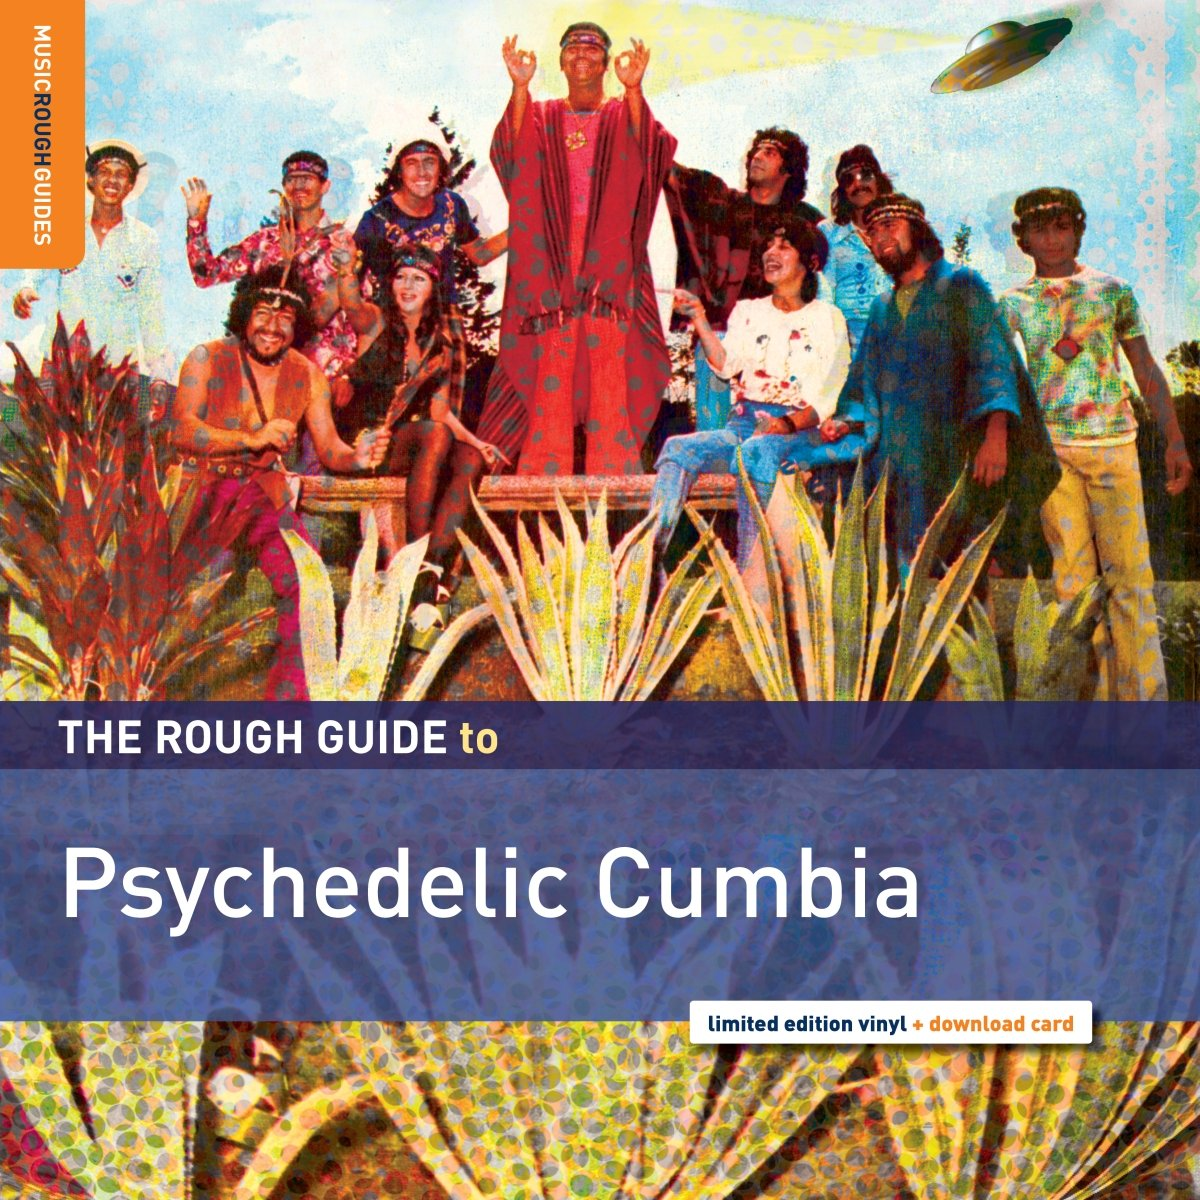 Psychedelic Cumbia. The Rough Guide (LP) kopen